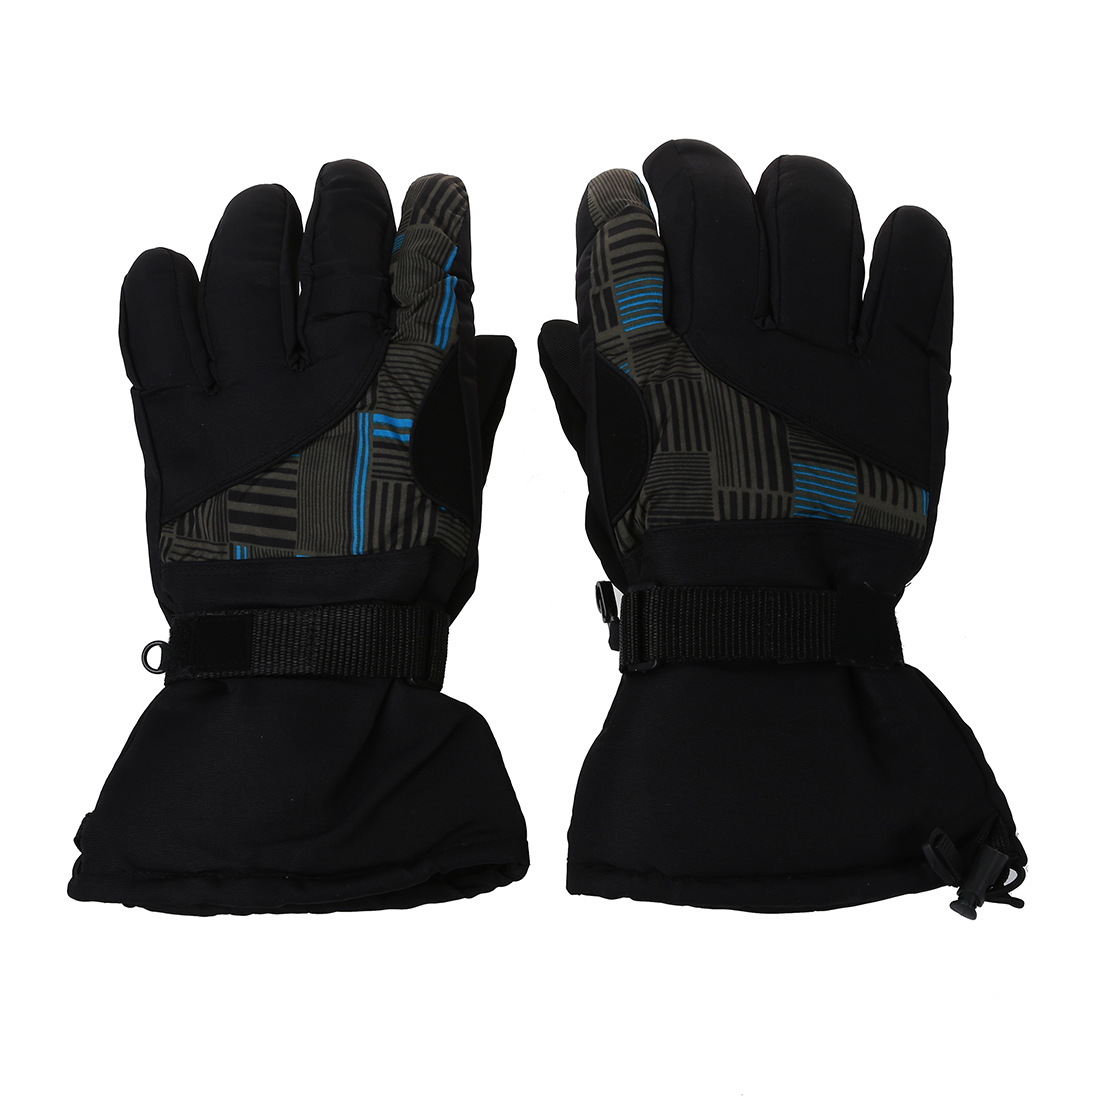 Winter Man Outdoor Sports Waterproof Thickening Climbing Skiing Gloves (Blue and black)